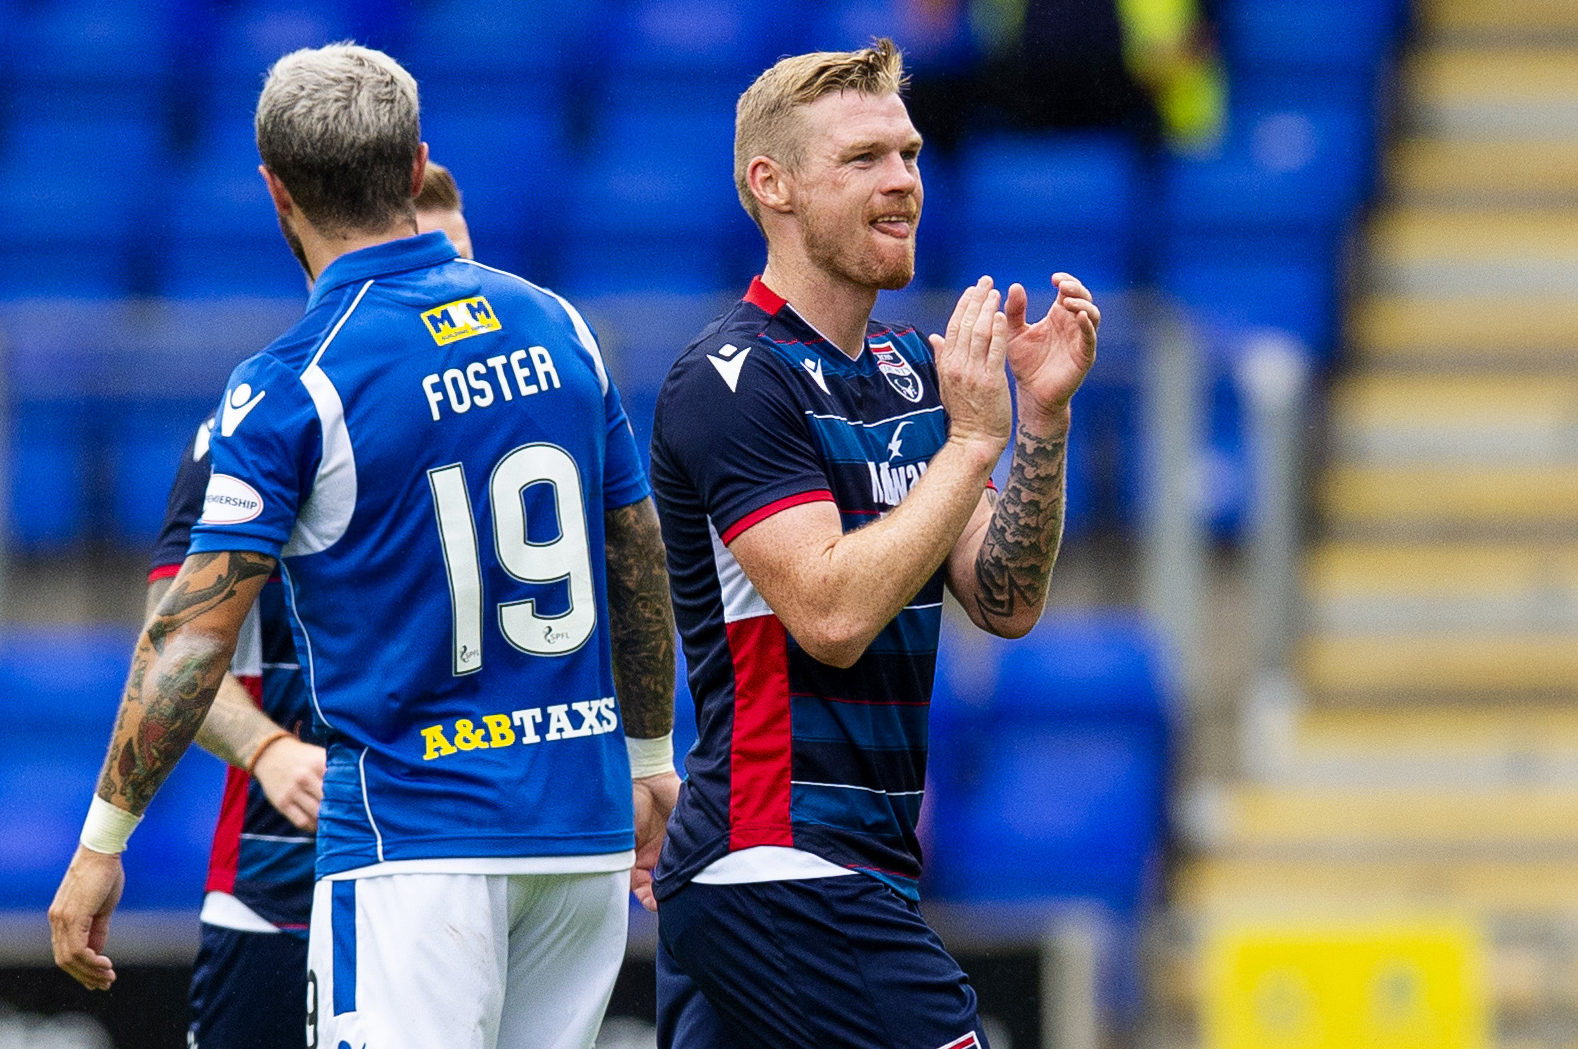 Ross County's Billy McKay applauds the fans at full time